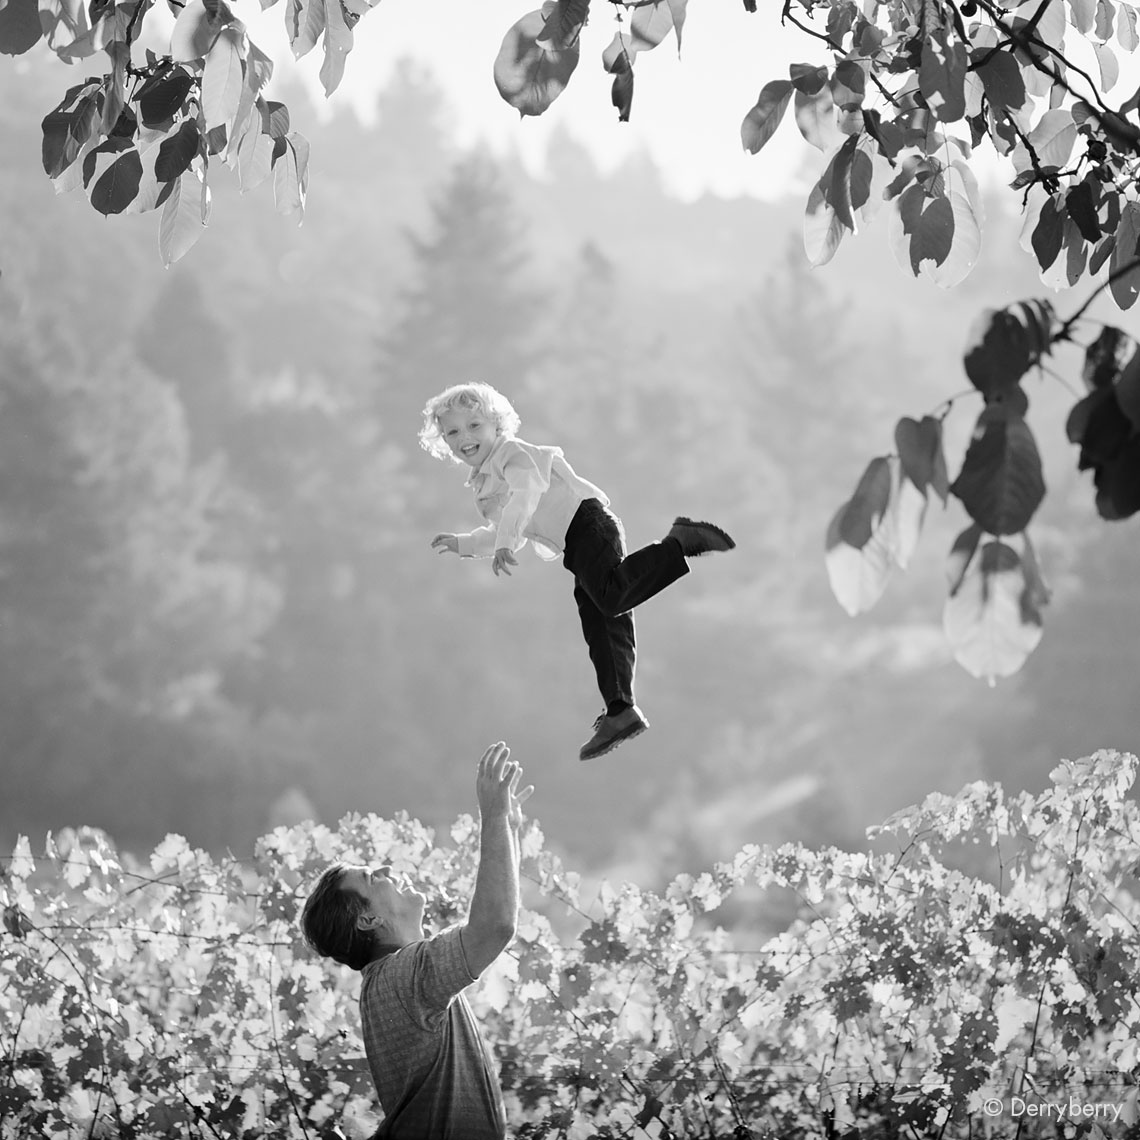 Black and white portrait of a laughing young boy being thrown high by his father in a Napa Valley vineyard